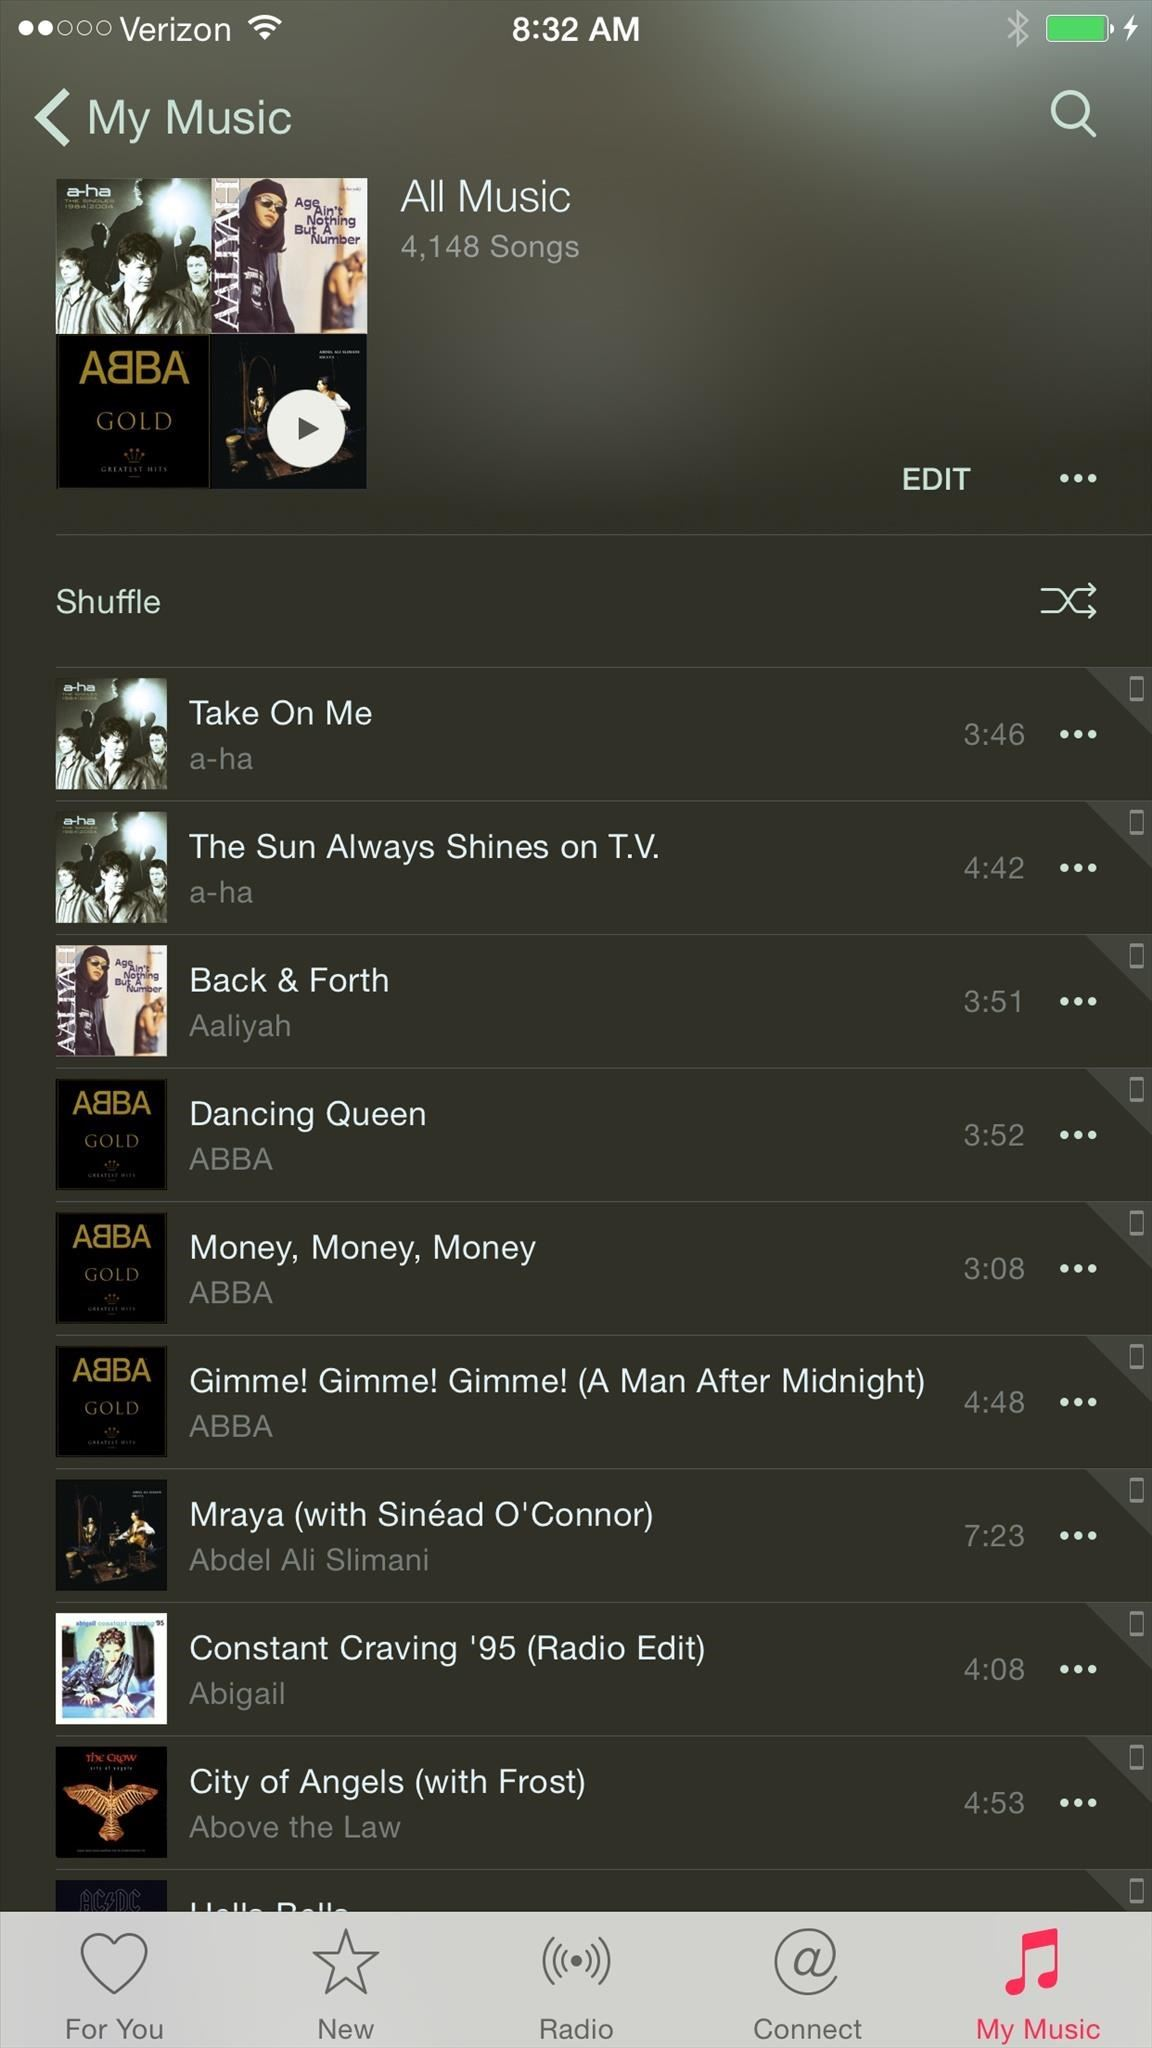 how to add new songs in iphone using itunes